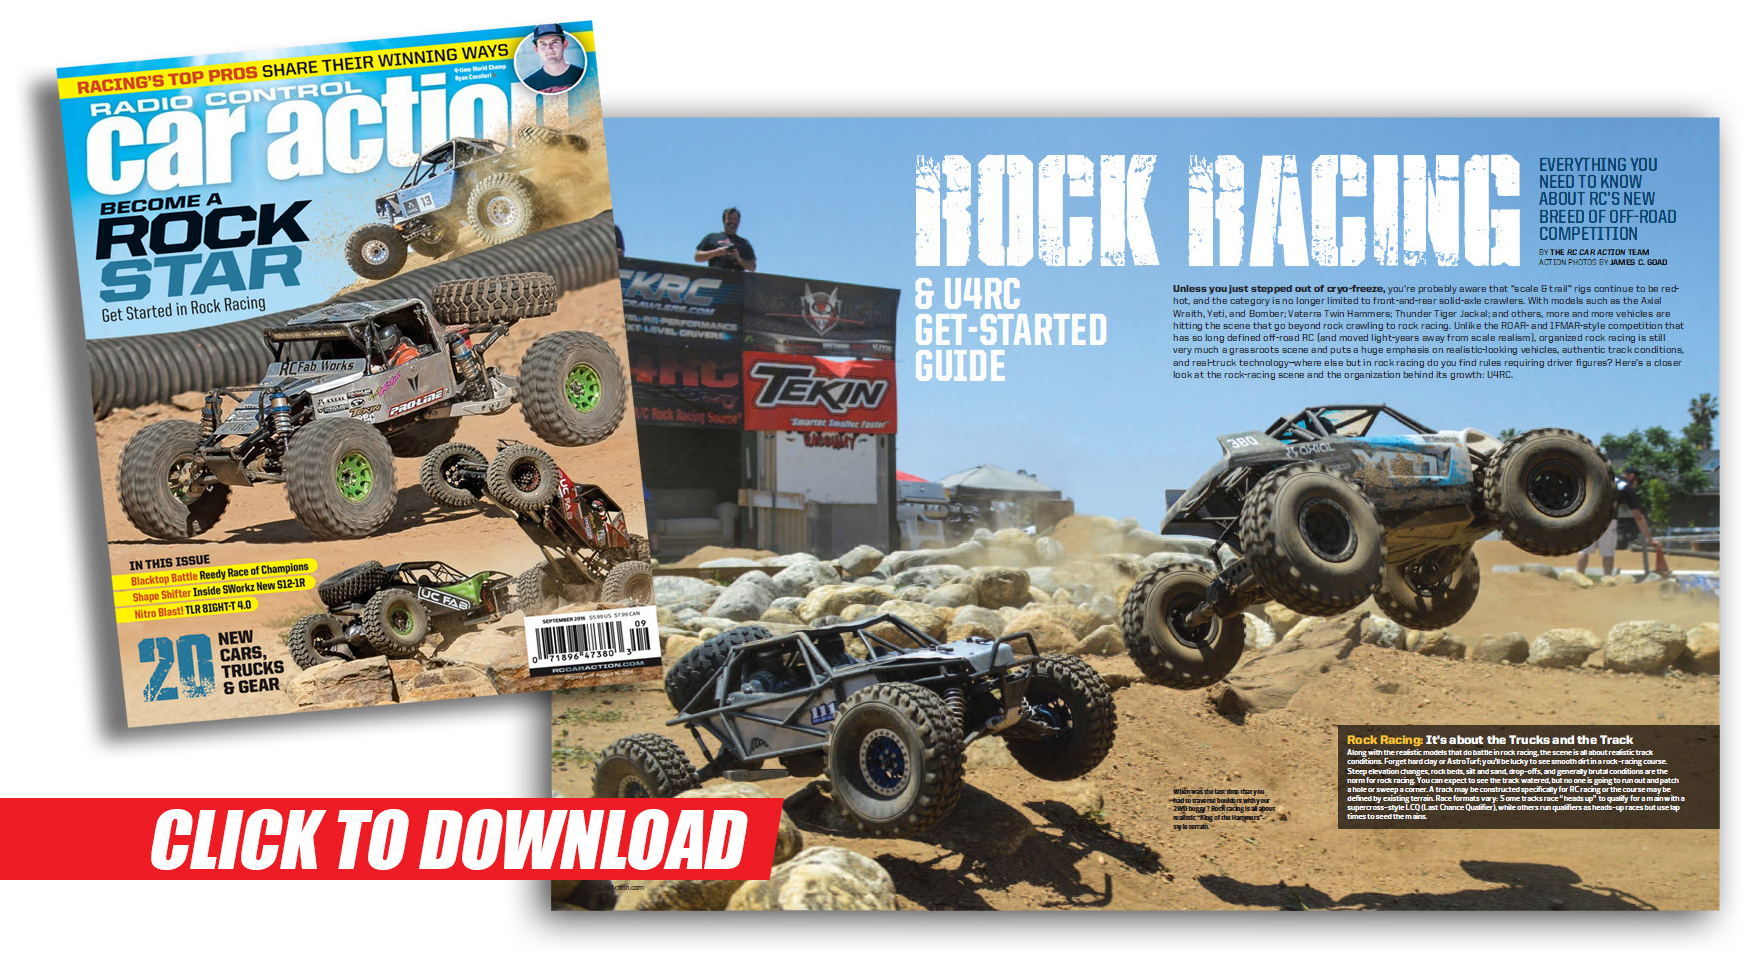 Get Started In Rock Racing